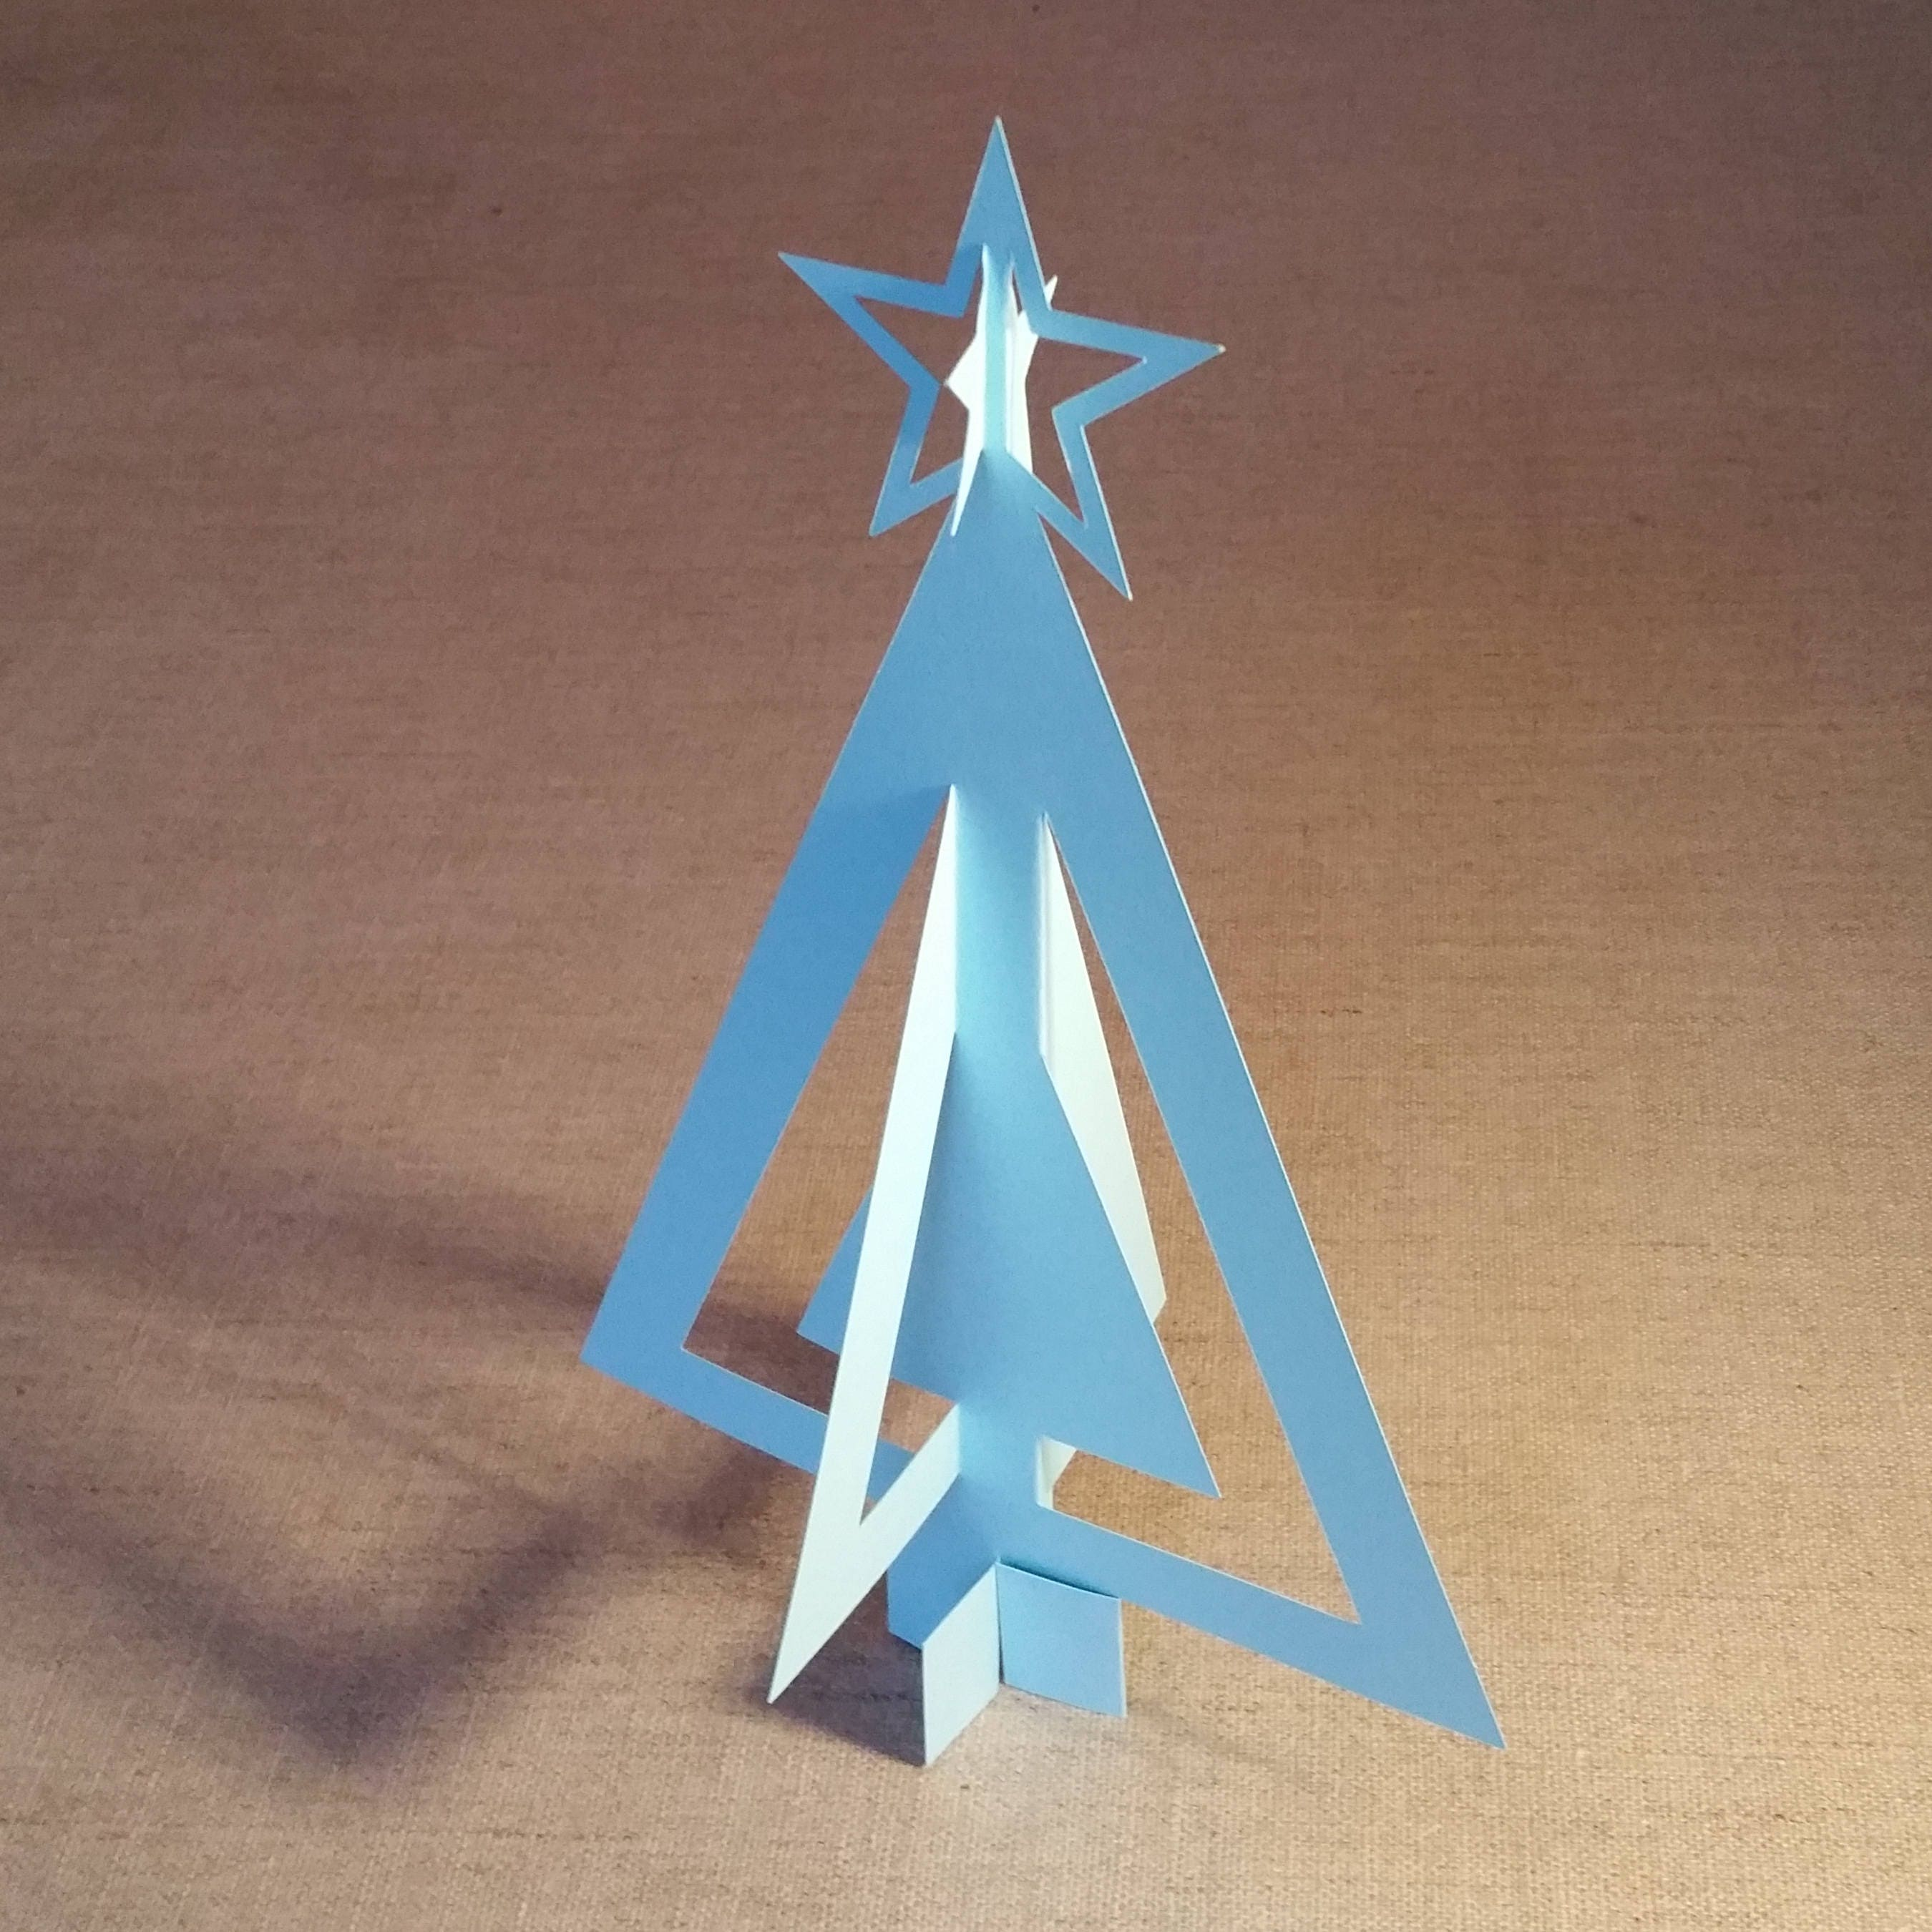 3d Paper Christmas Tree Template.Diy Paper 3d Christmas Tree Template Svg Pdf Dxf Png For Cricut